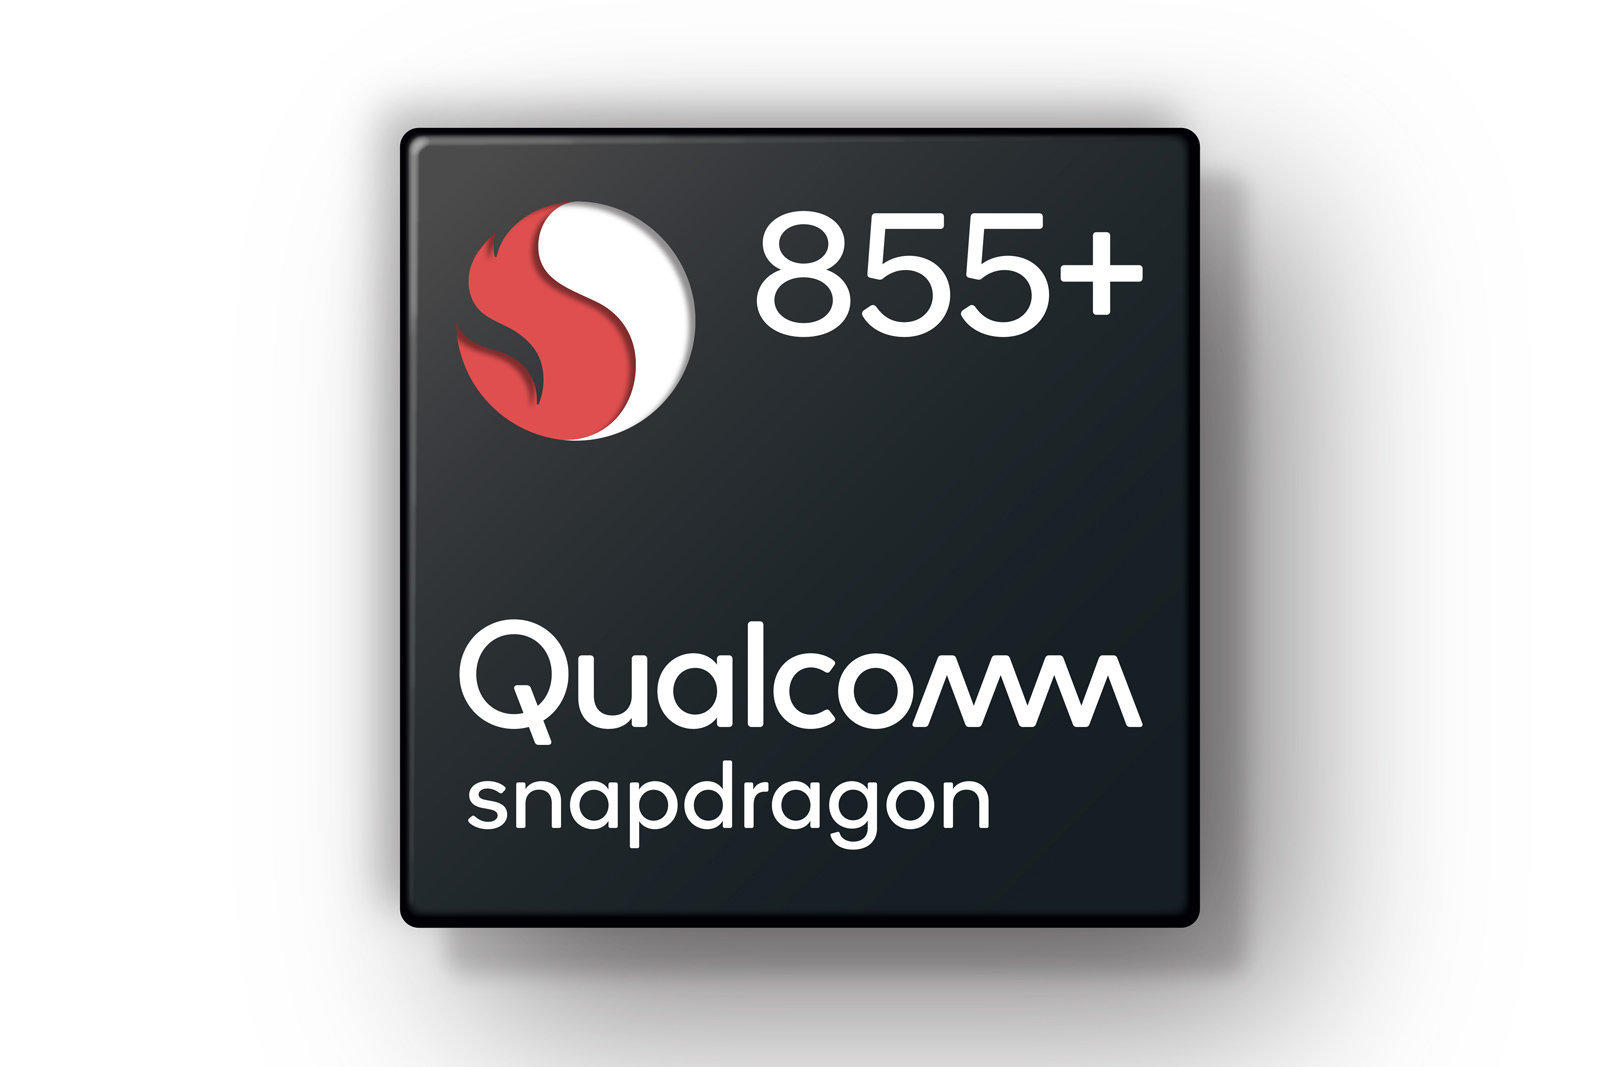 Qualcomm Snapdragon 855 Plus Mobile Platform with